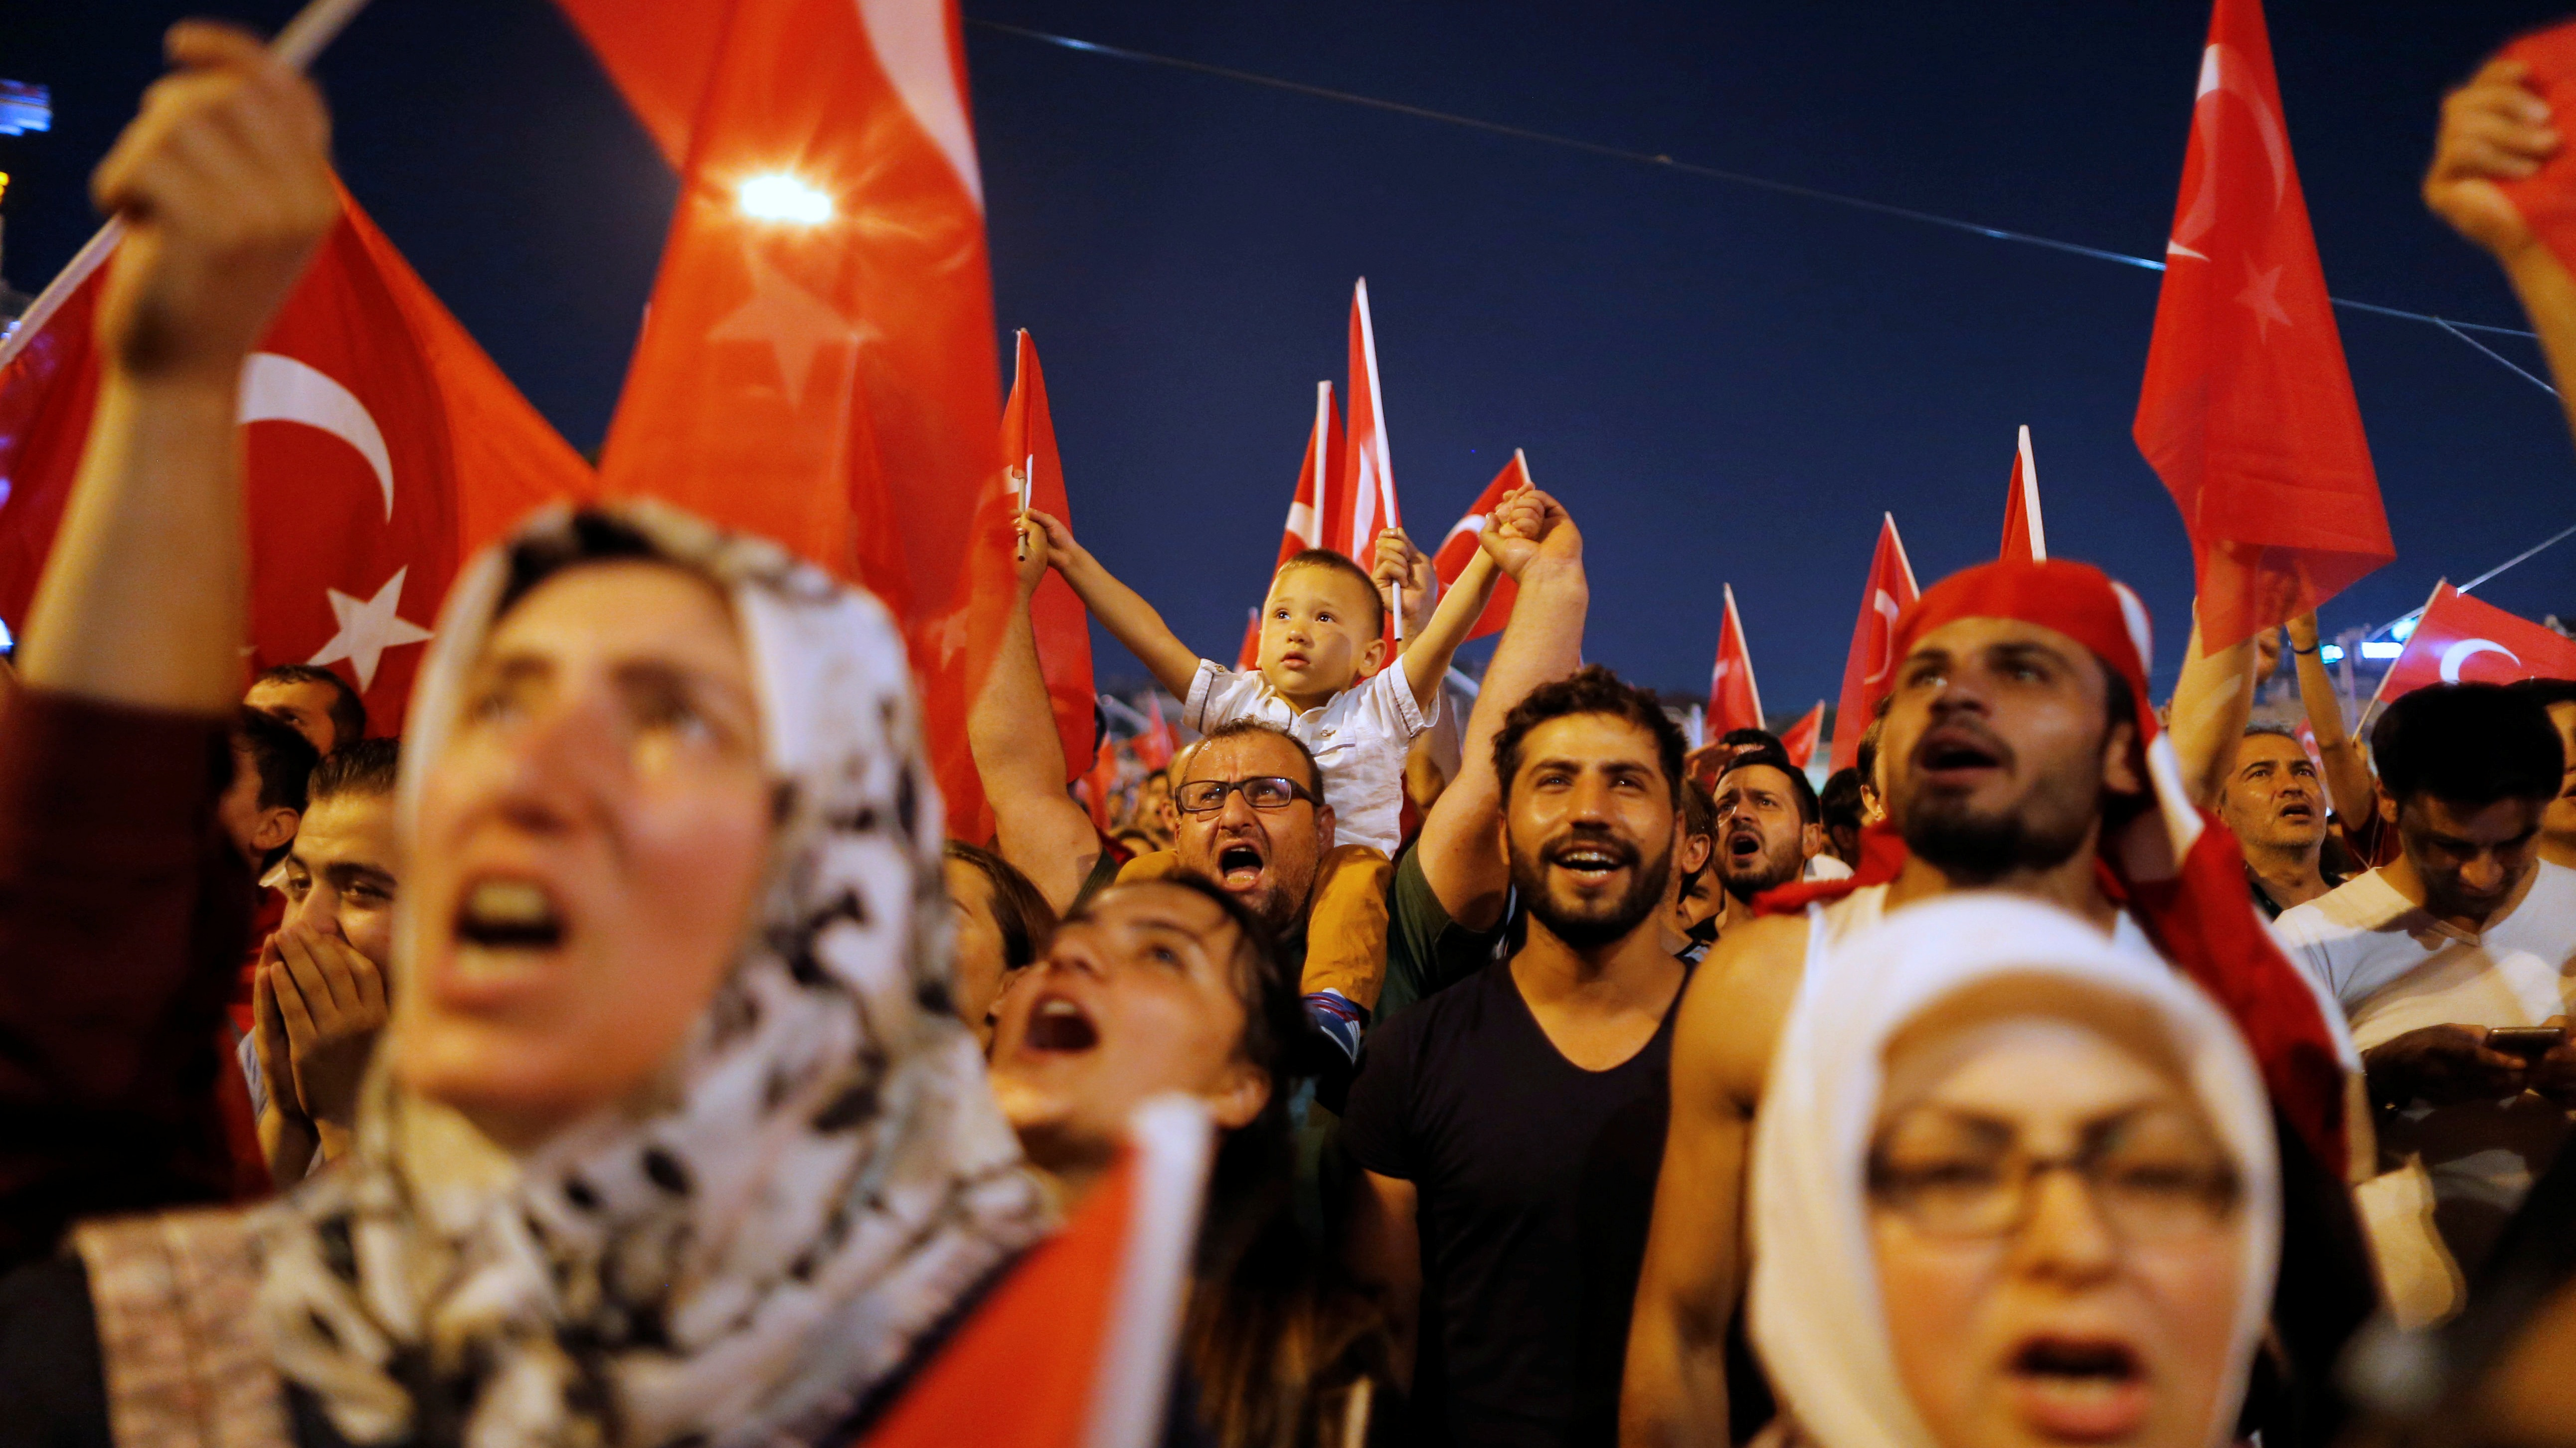 Turkish people played biggest part in blocking coup